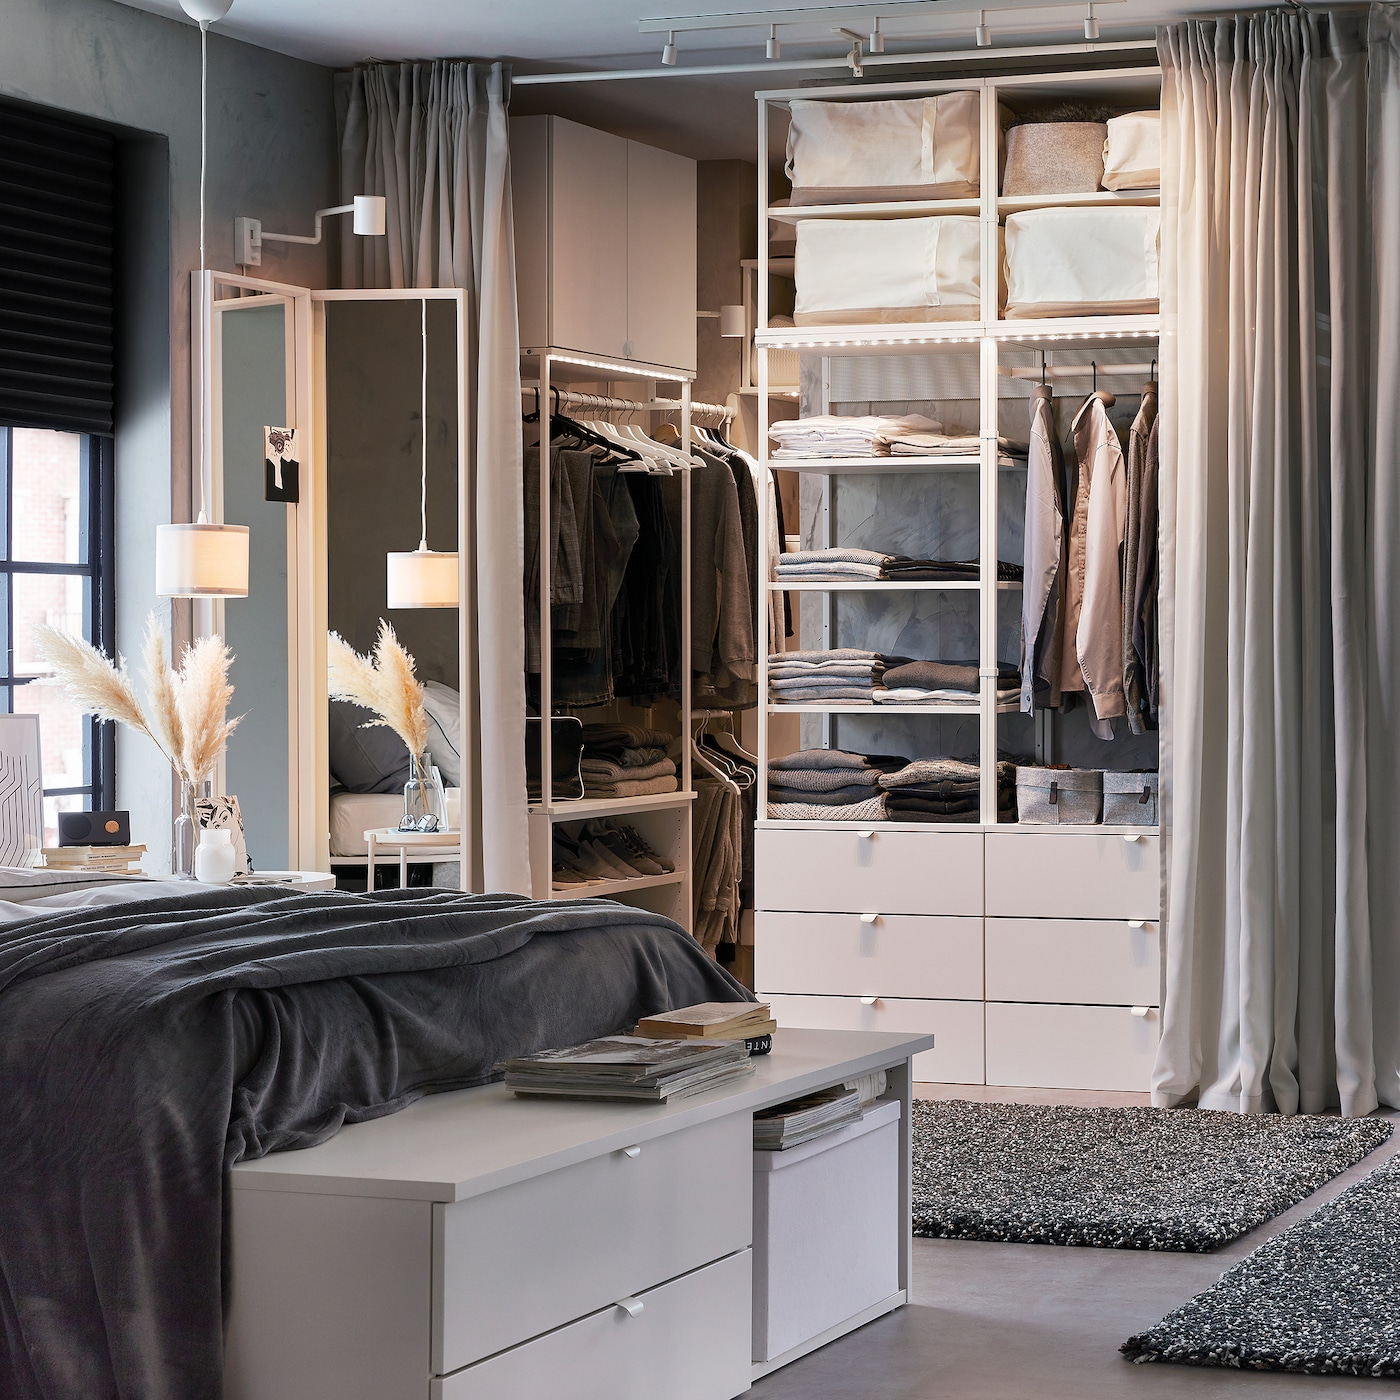 An overall white and grey bedroom with a white bench with drawers, an open wardrobe, light grey curtains and dark grey rugs.